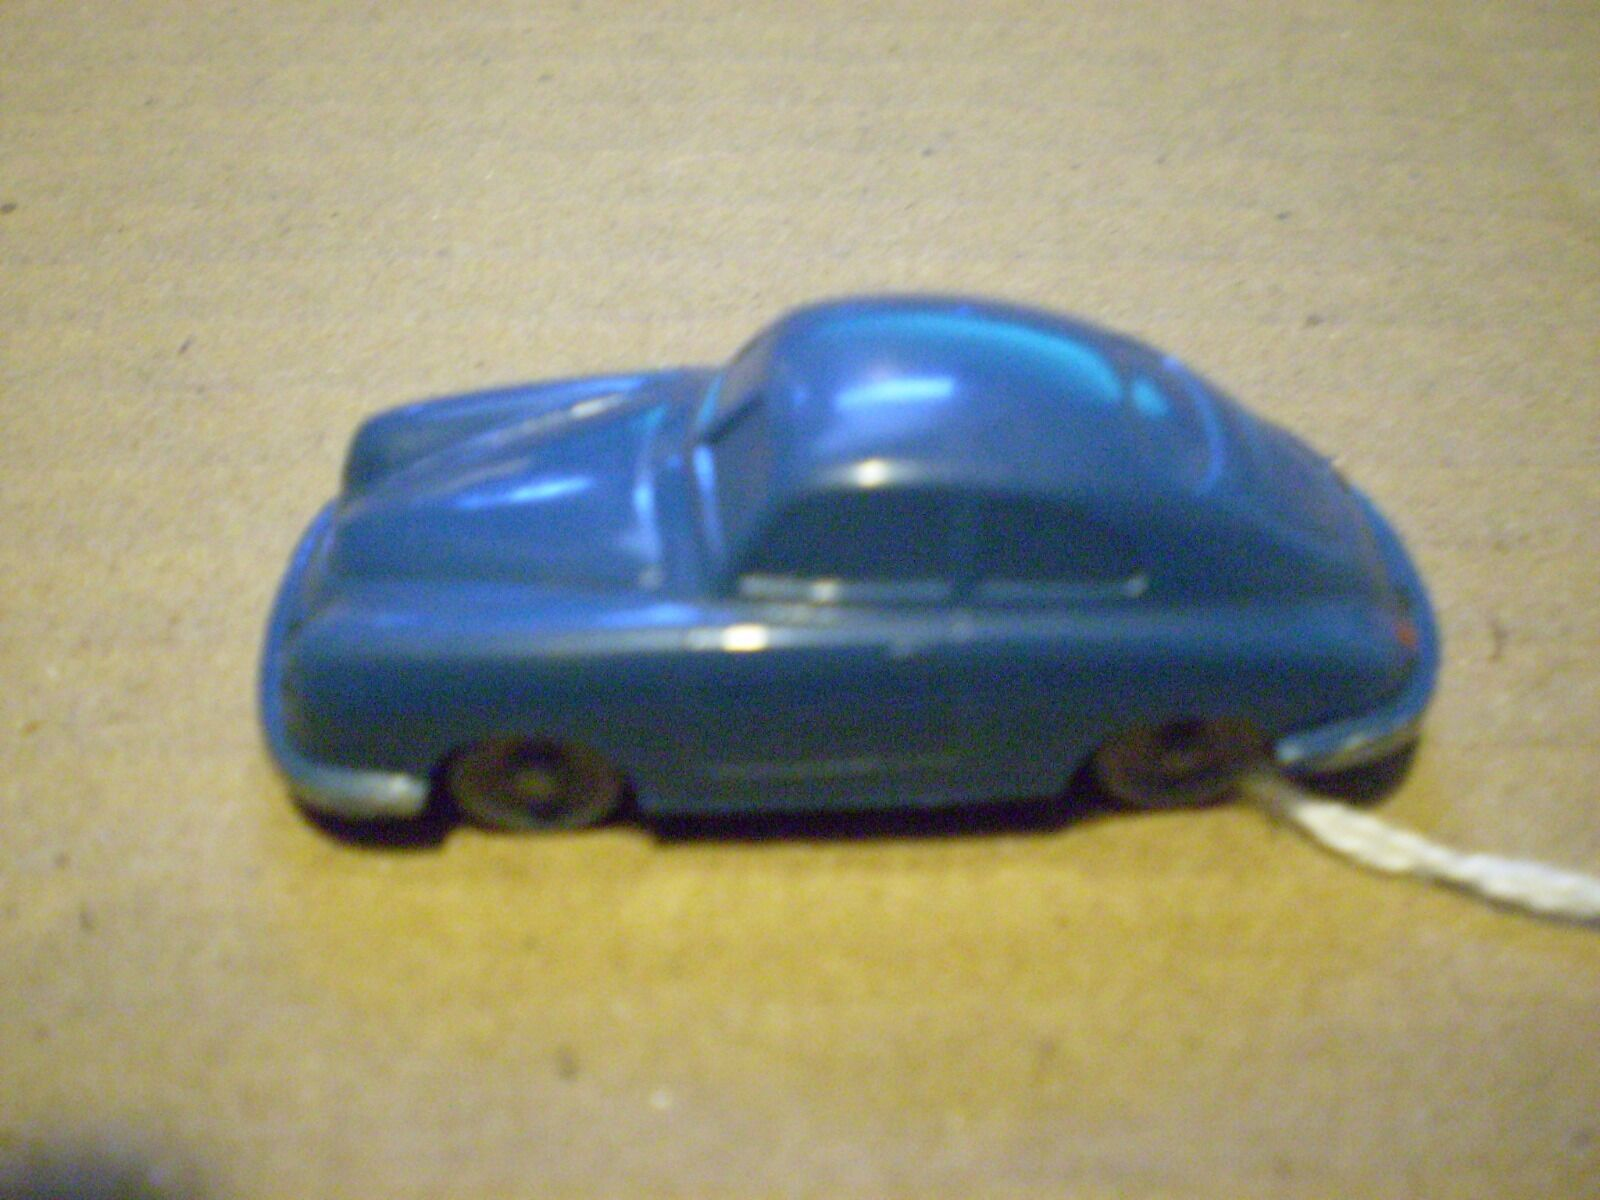 J Wiking Porsche 356 160 160 160 2 B  azurblue   356 pre A Split Window unverglast d03858